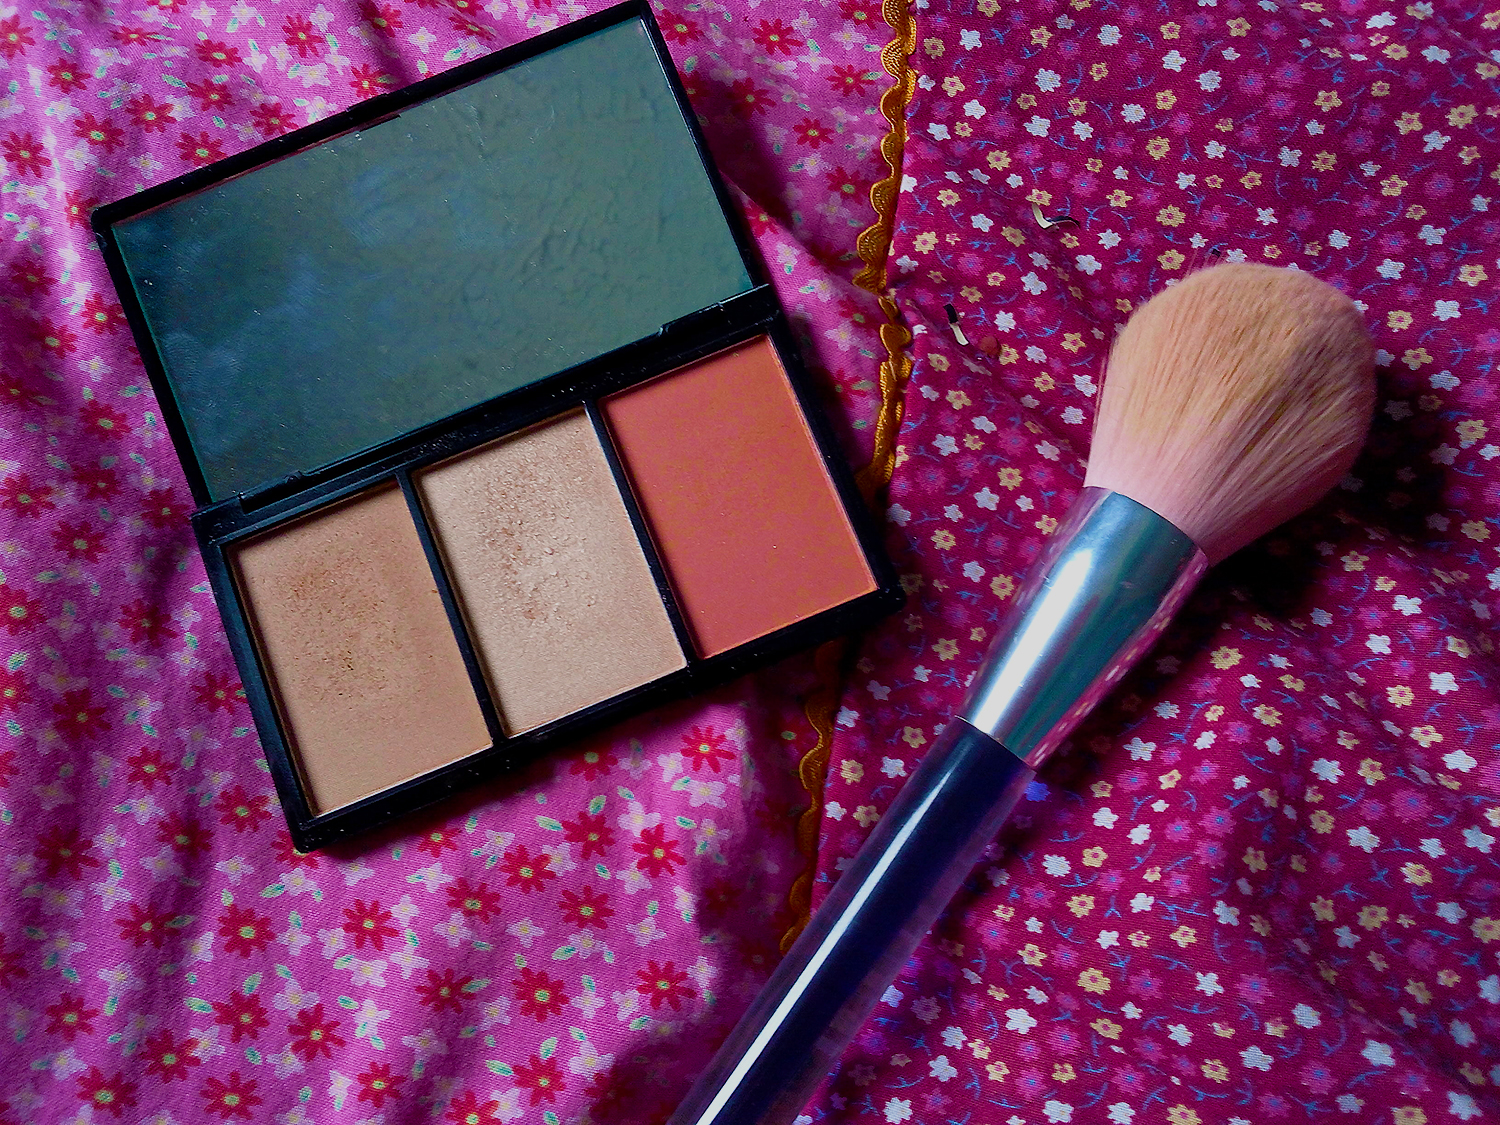 Makeup Revolution Iconic Pro Blush, Bronze & Brighten Rave Review